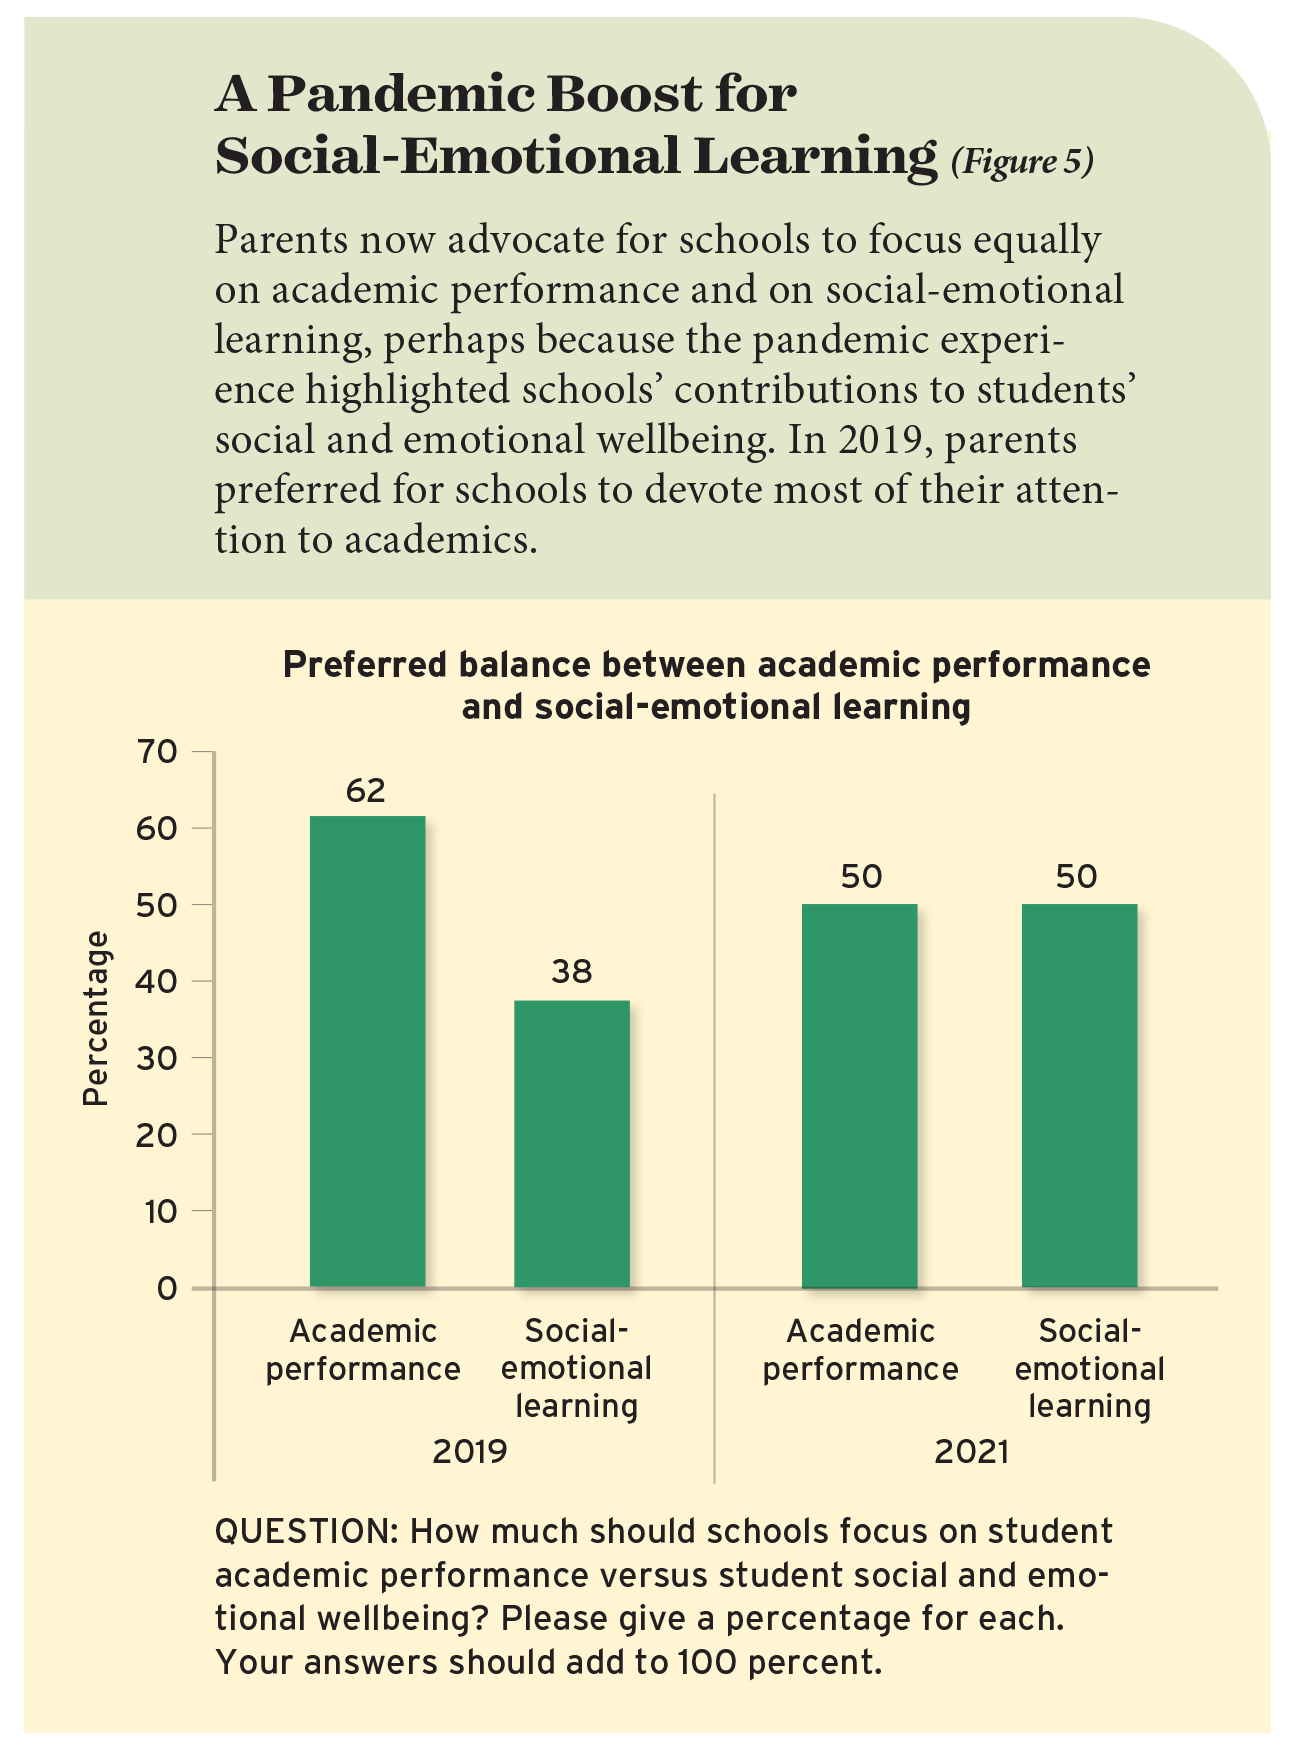 A Pandemic Boost for Social-Emotional Learning (Figure 5